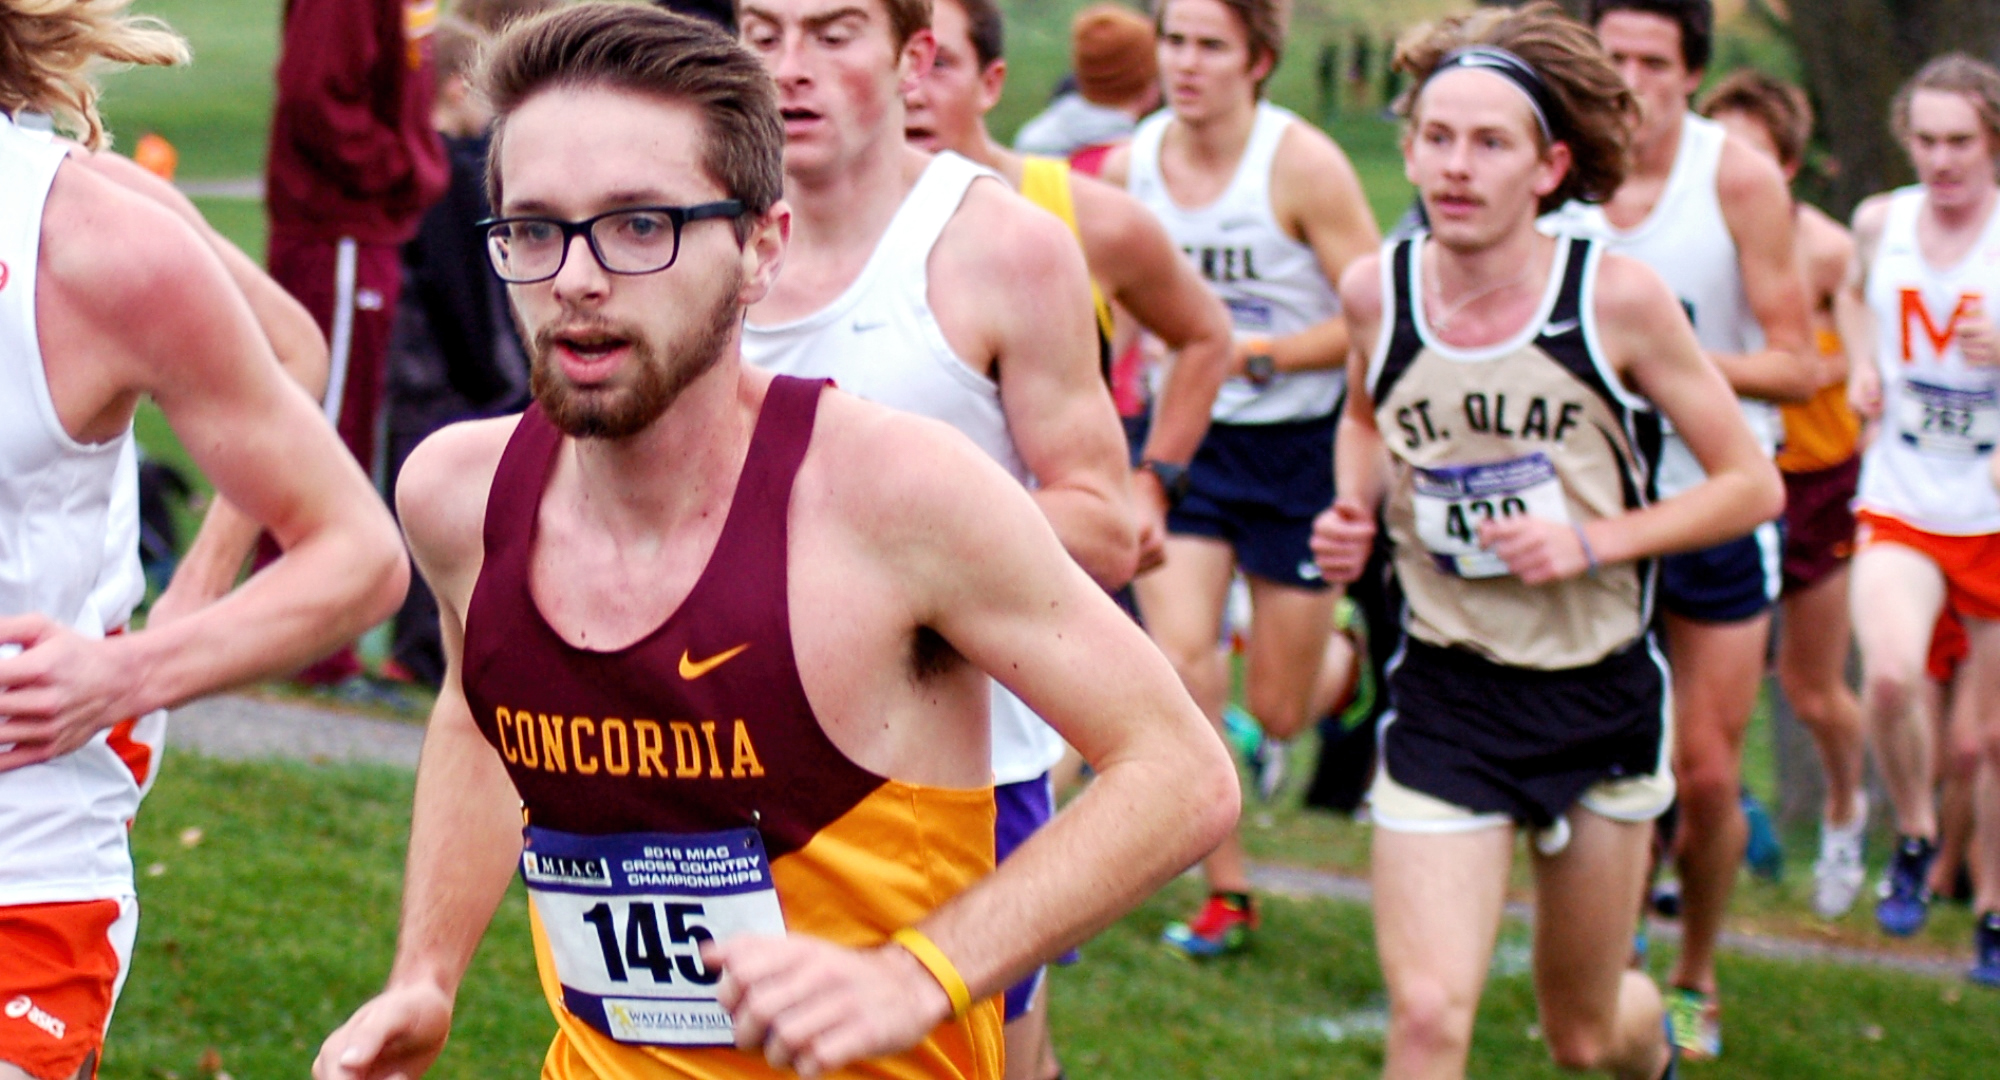 Freshman Eric Wicklund posted a Top 50 finish in his first conference meet and led the Cobbers at the MIAC Meet.